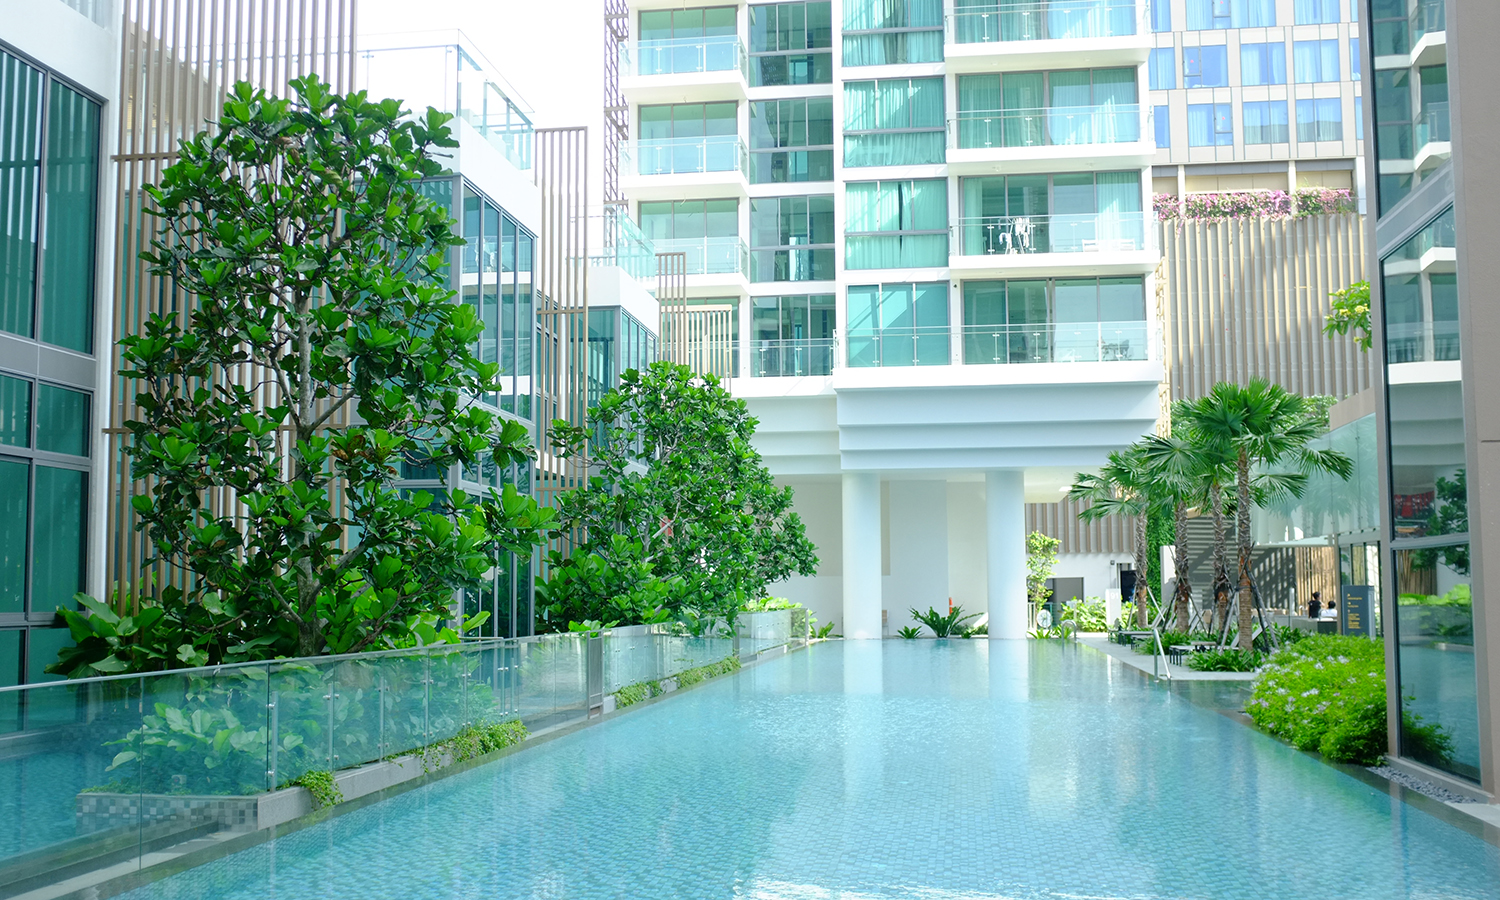 Situated in District 15 of the Marine Parade area, Marine Blue offers residents many options for outdoor recreational activities and exciting lifestyle attractions. The landscape complements the active lifestyles of the residents by providing unobstructed inviting views of the surrounding and still retain the  privacy of the estate.